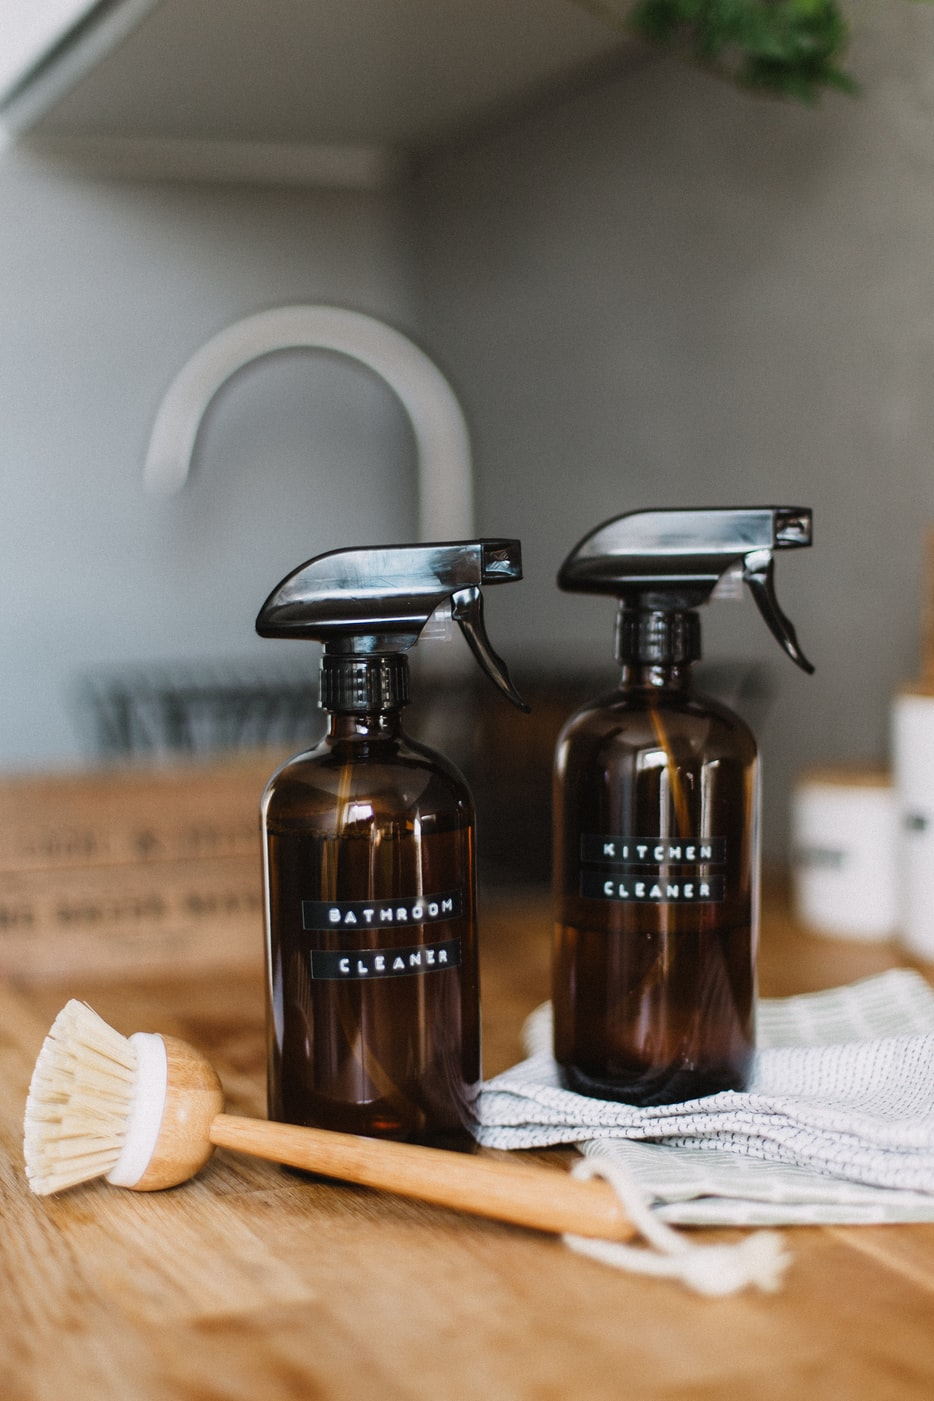 Bottled cleaners with broom